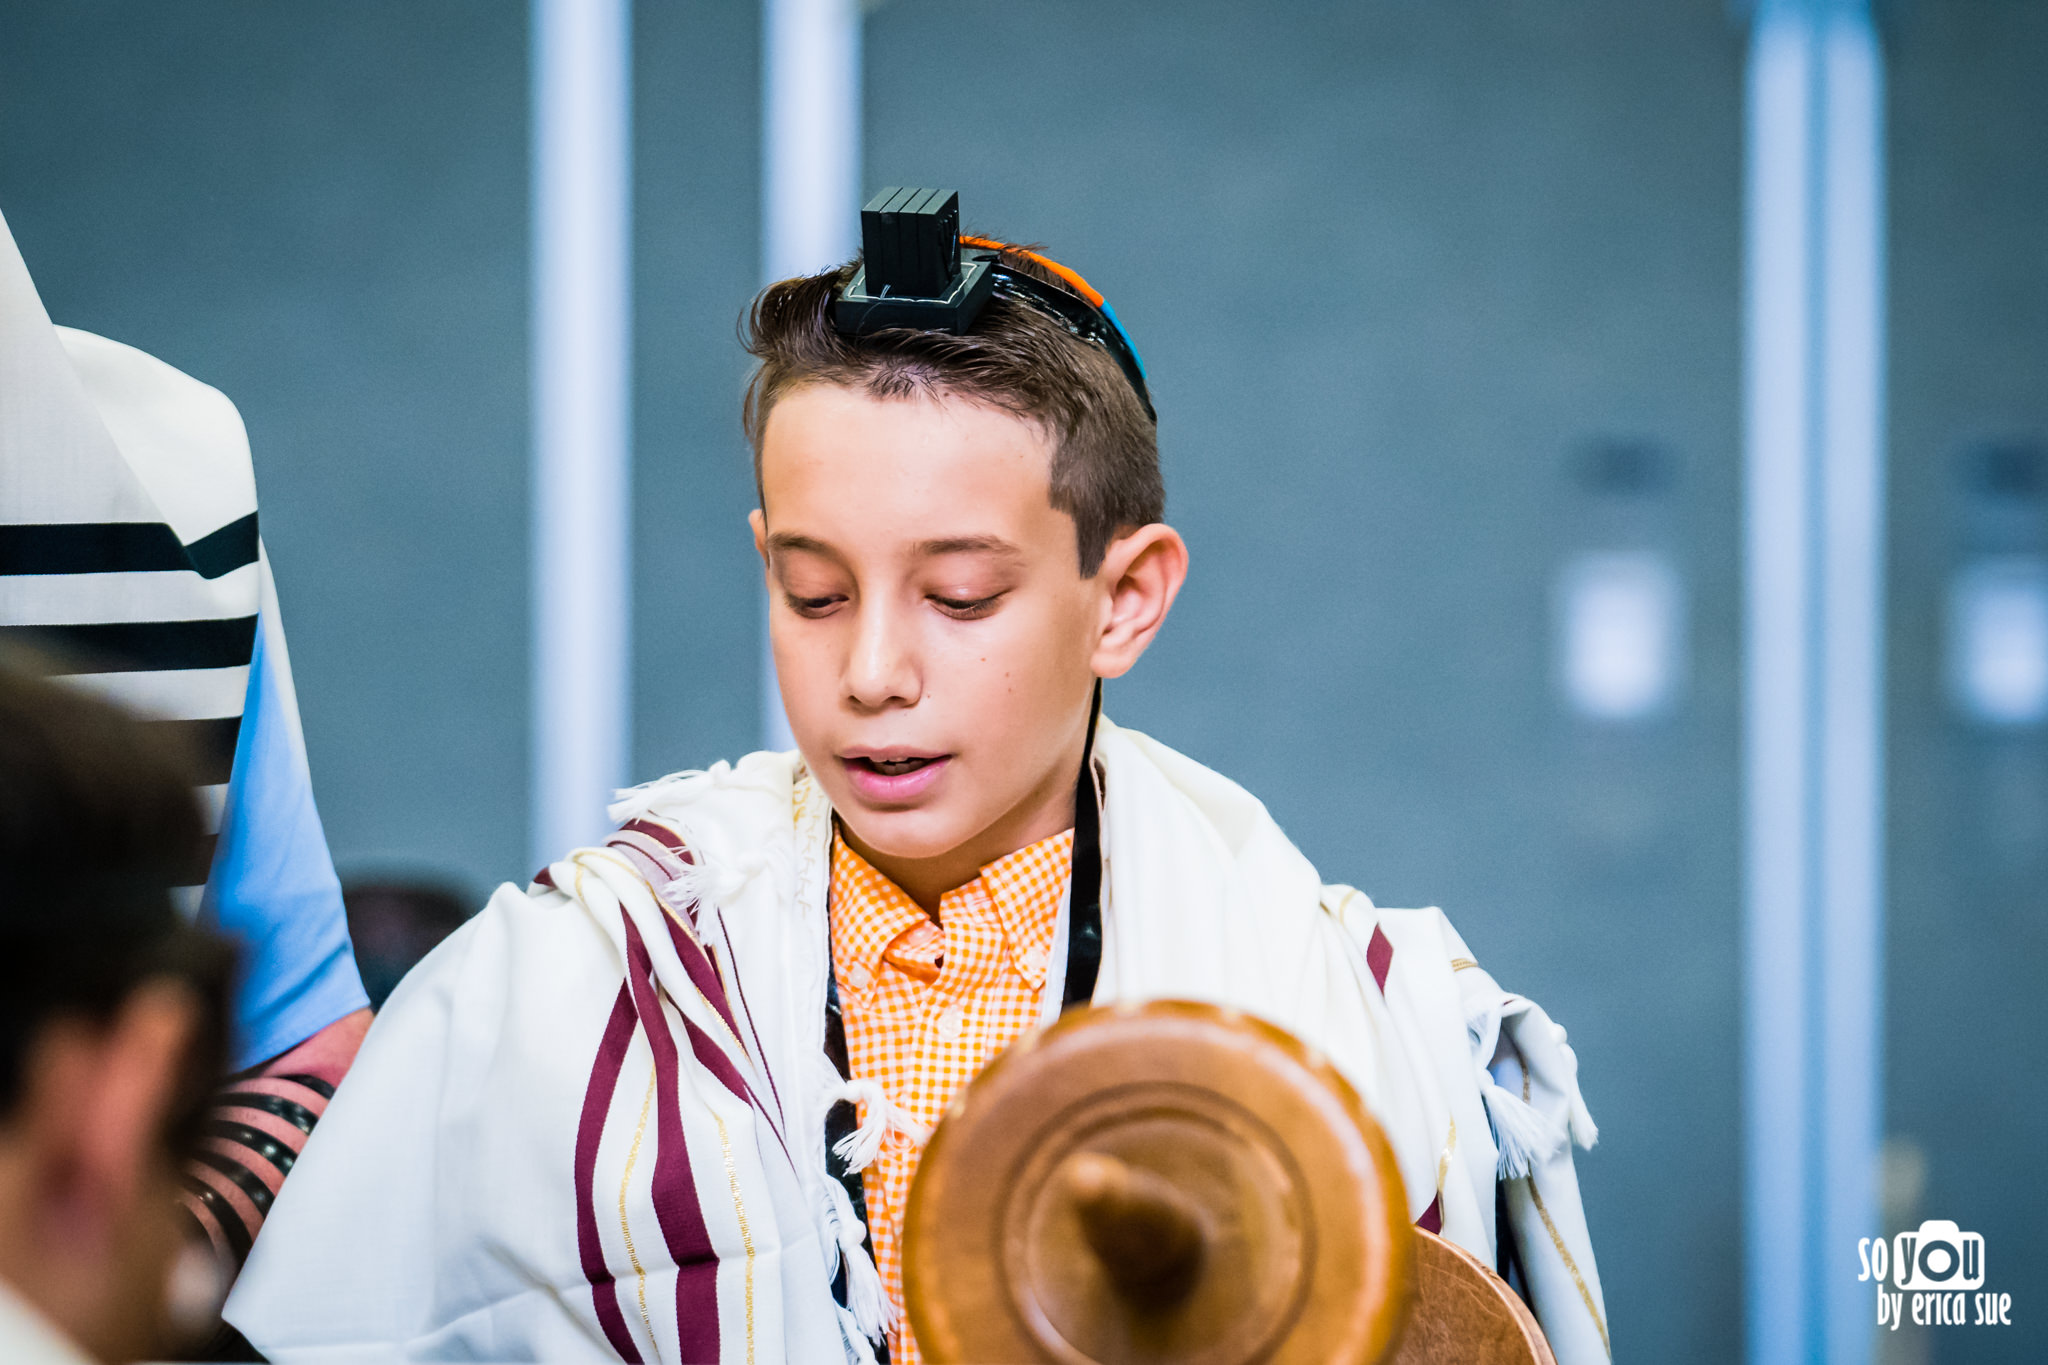 so-you-by-erica-sue-young-israel-hollywood-fl-mitzvah-photographer-7308770.JPG